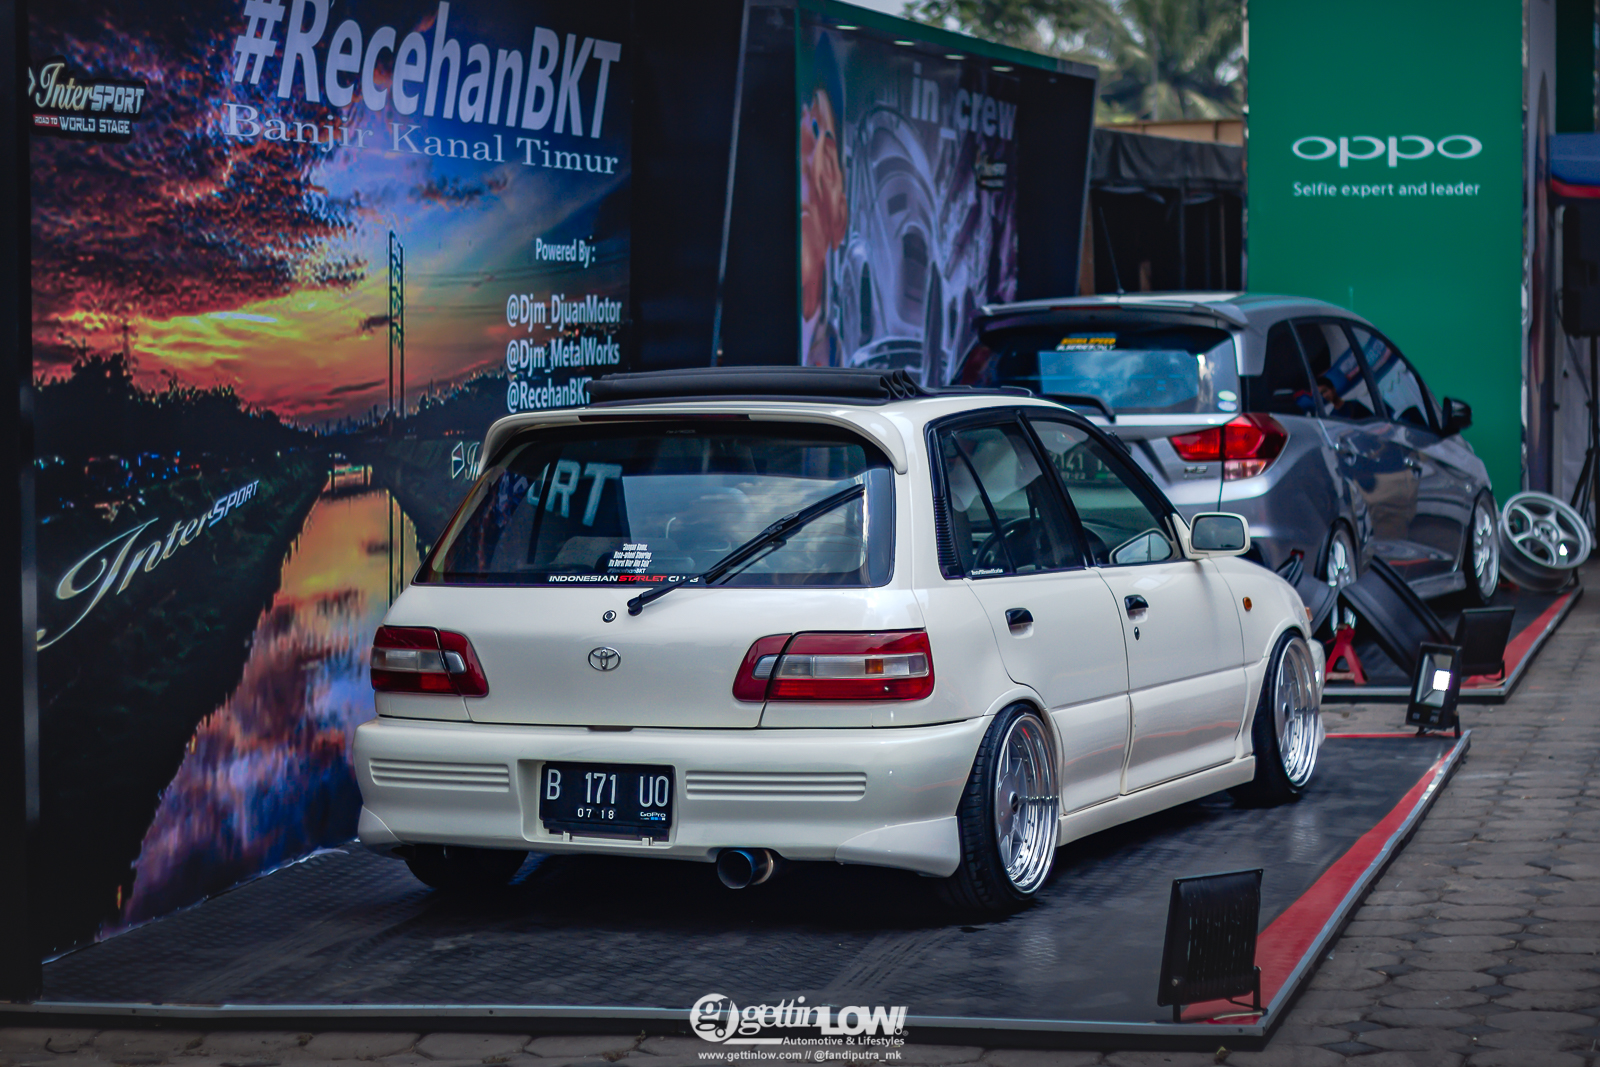 INTERSPORT-PROPERCARCONTEST-CAKUNG-CANON-28